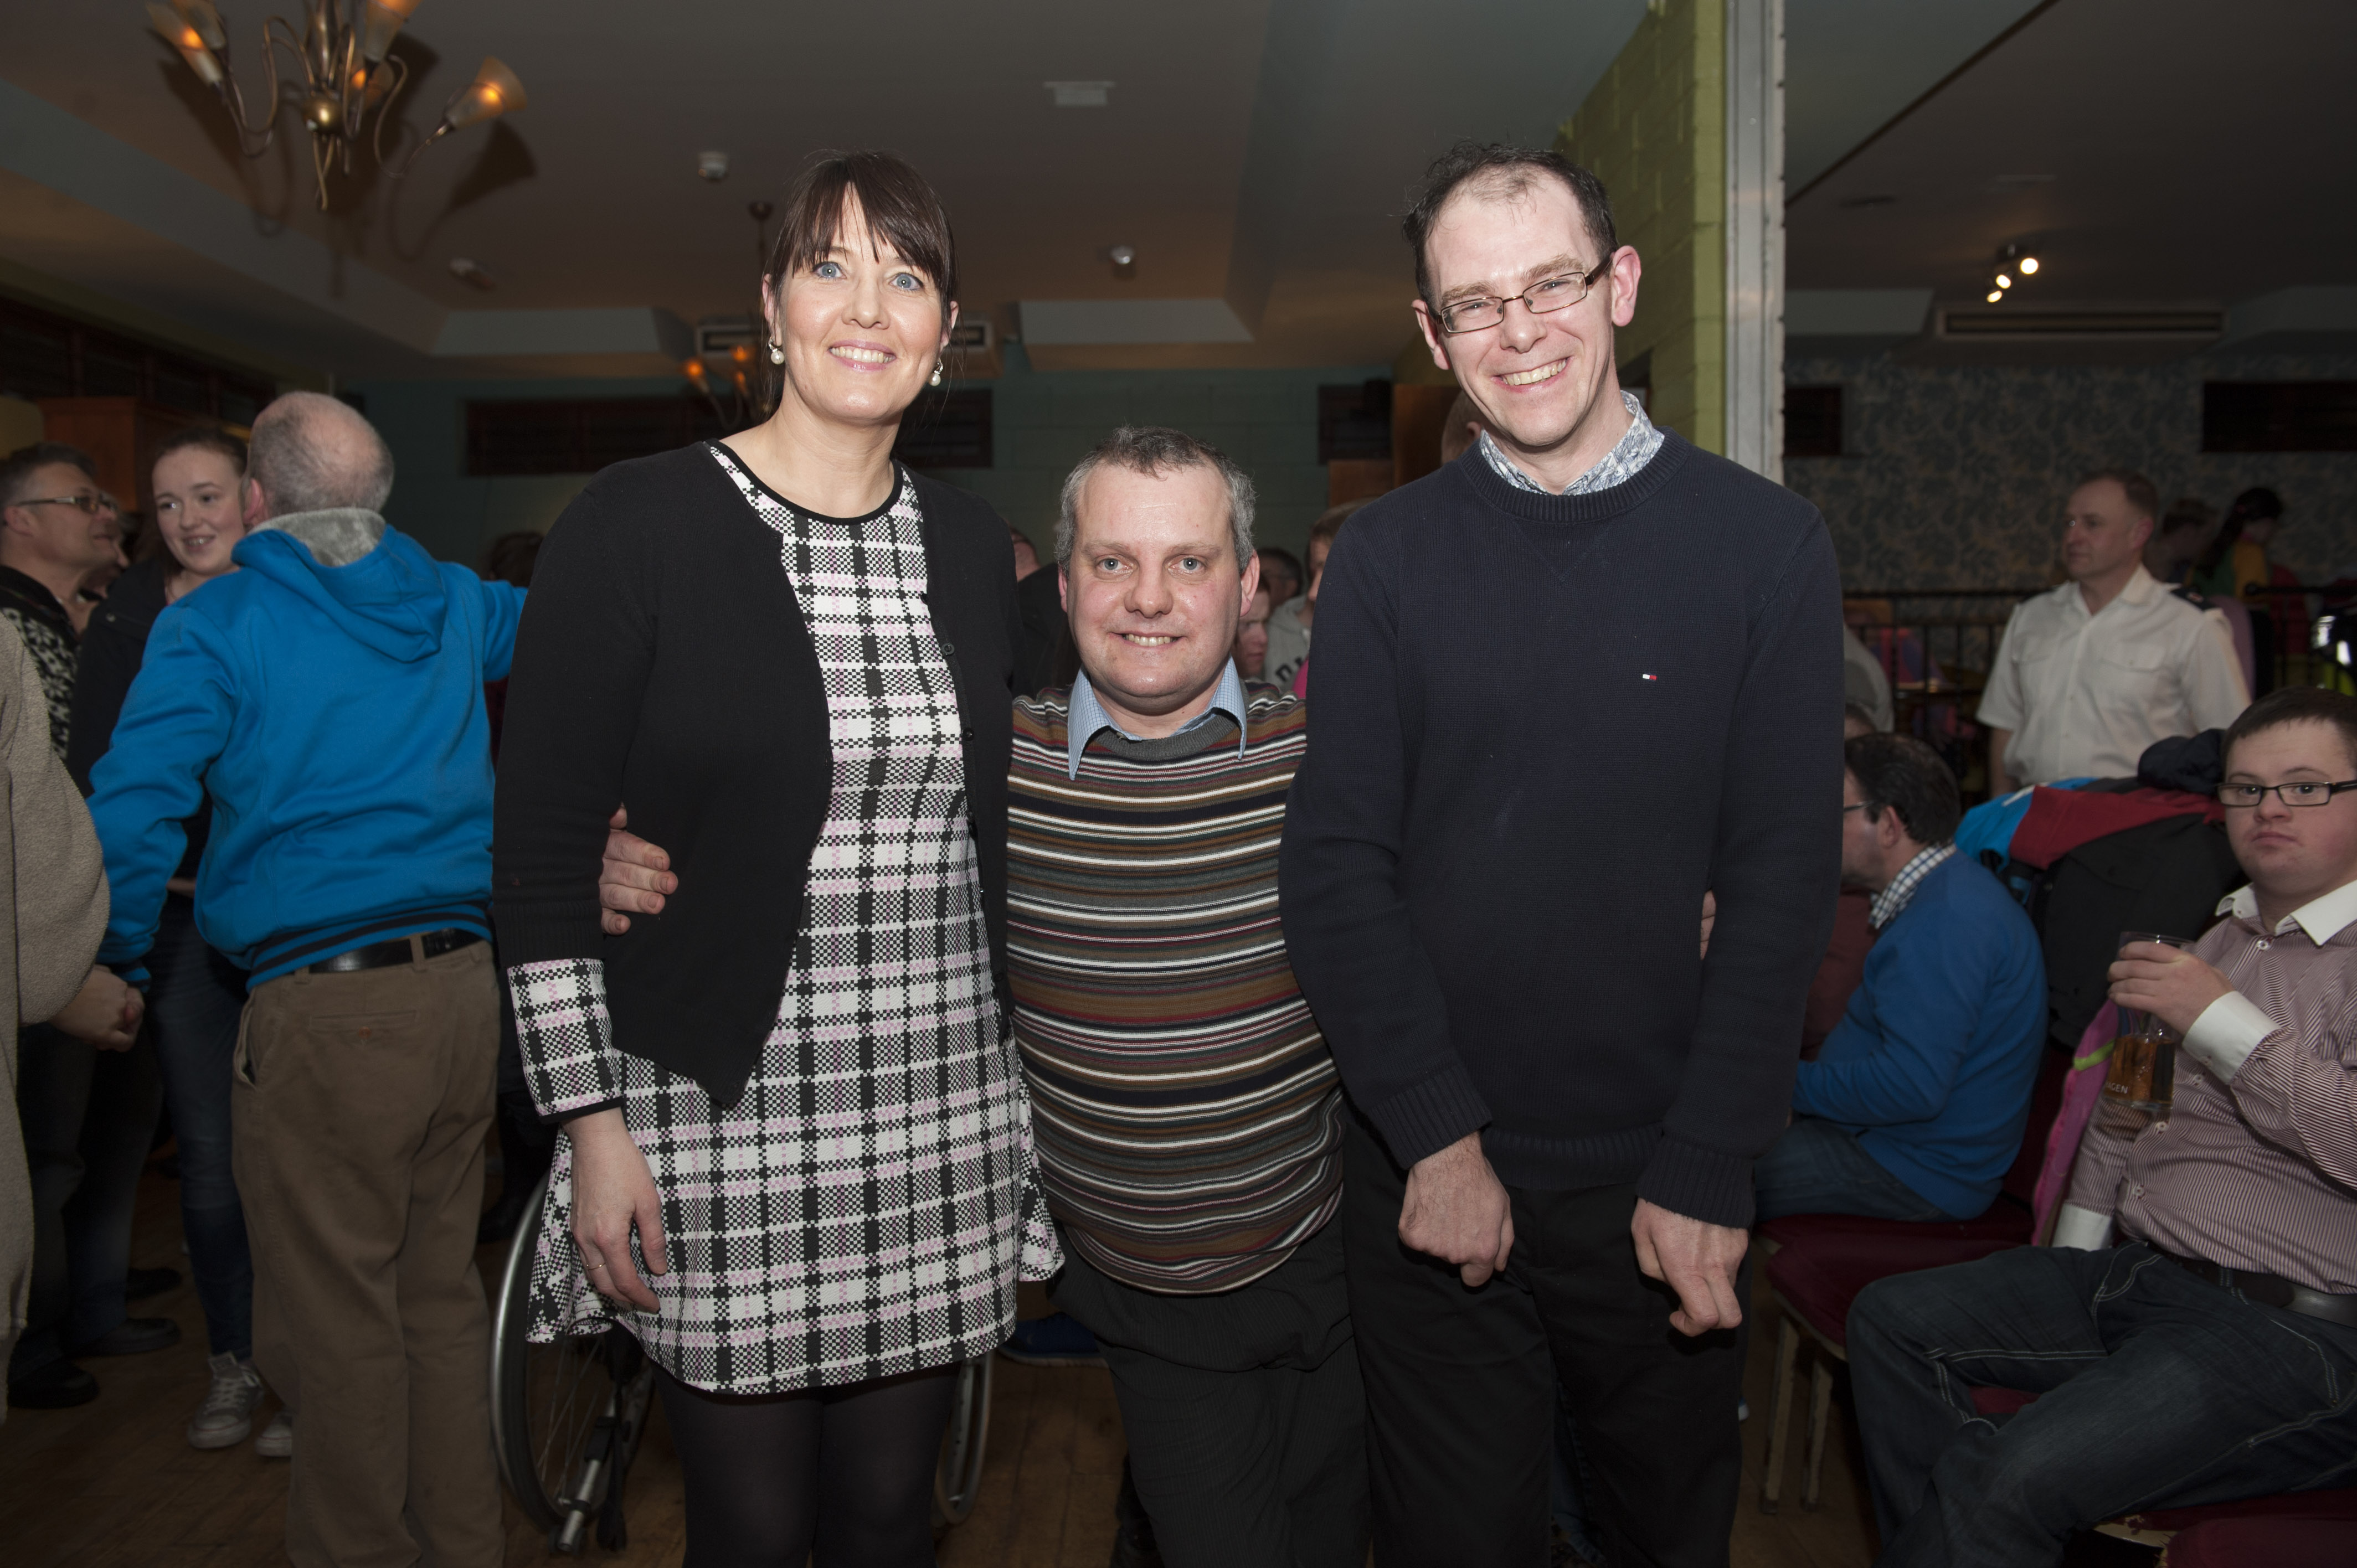 Nigel McClave, centre, who celebrated hs birthday at the Monaghan Arch Club Party, last week, with Darina Maloney-Moffett and Brendan Haughey, at the party. ©Rory Geary/The Northern Standard